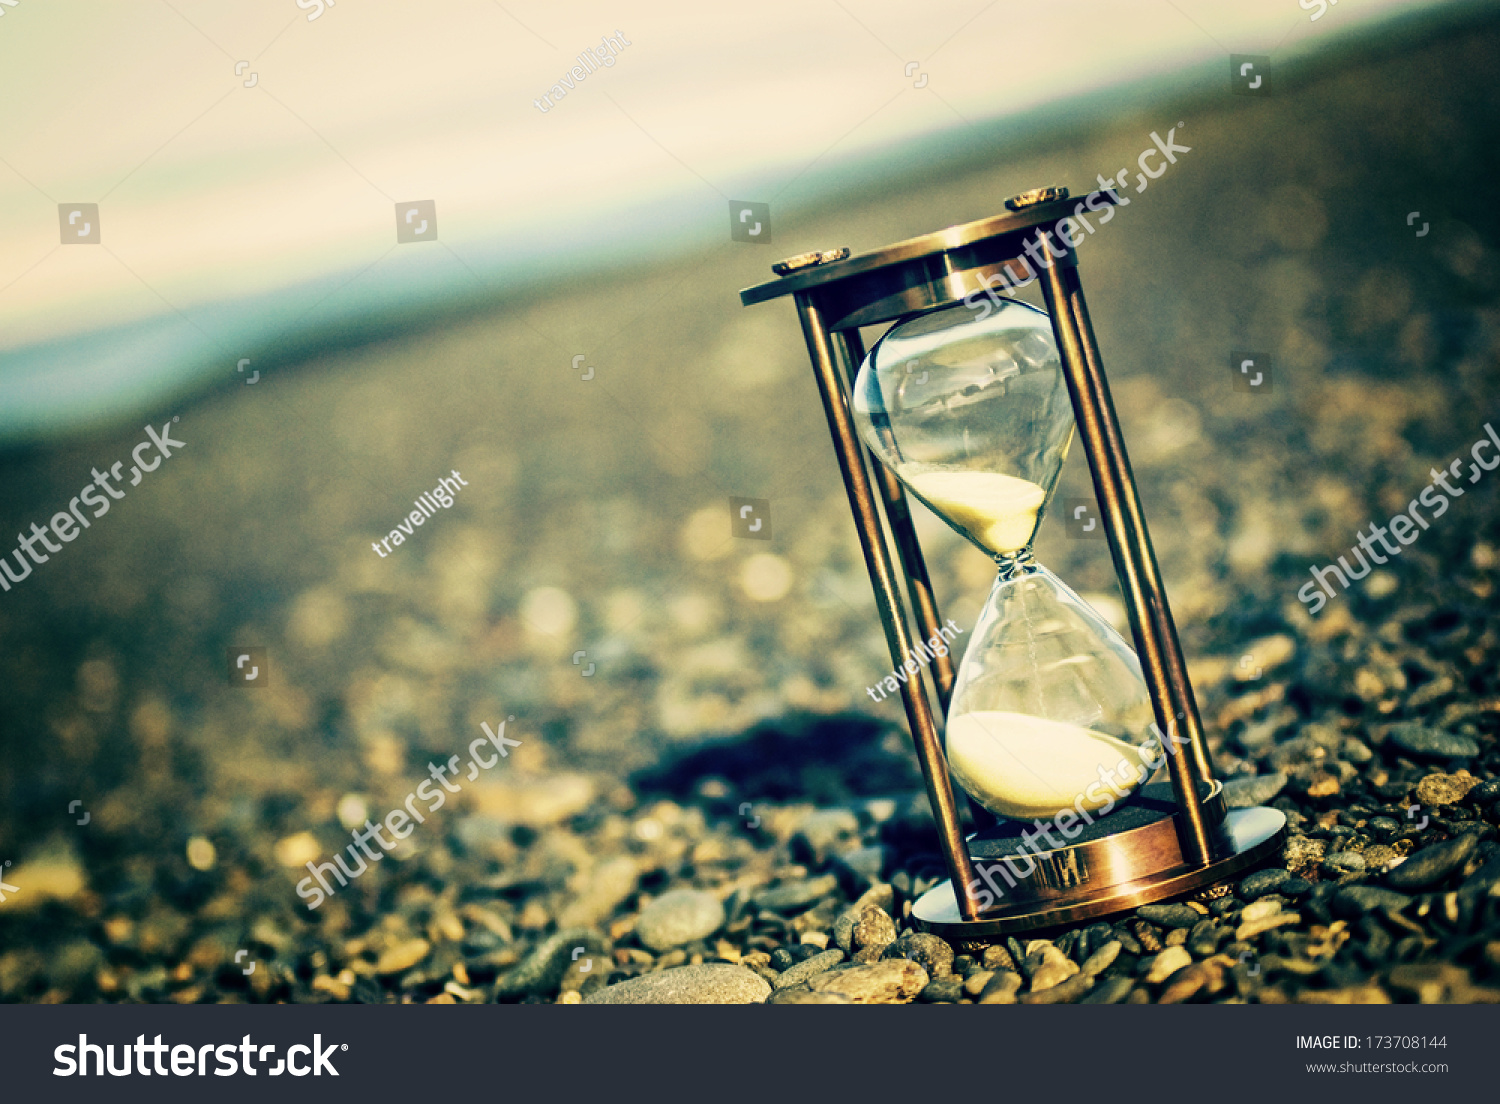 Sand Timer Quotes